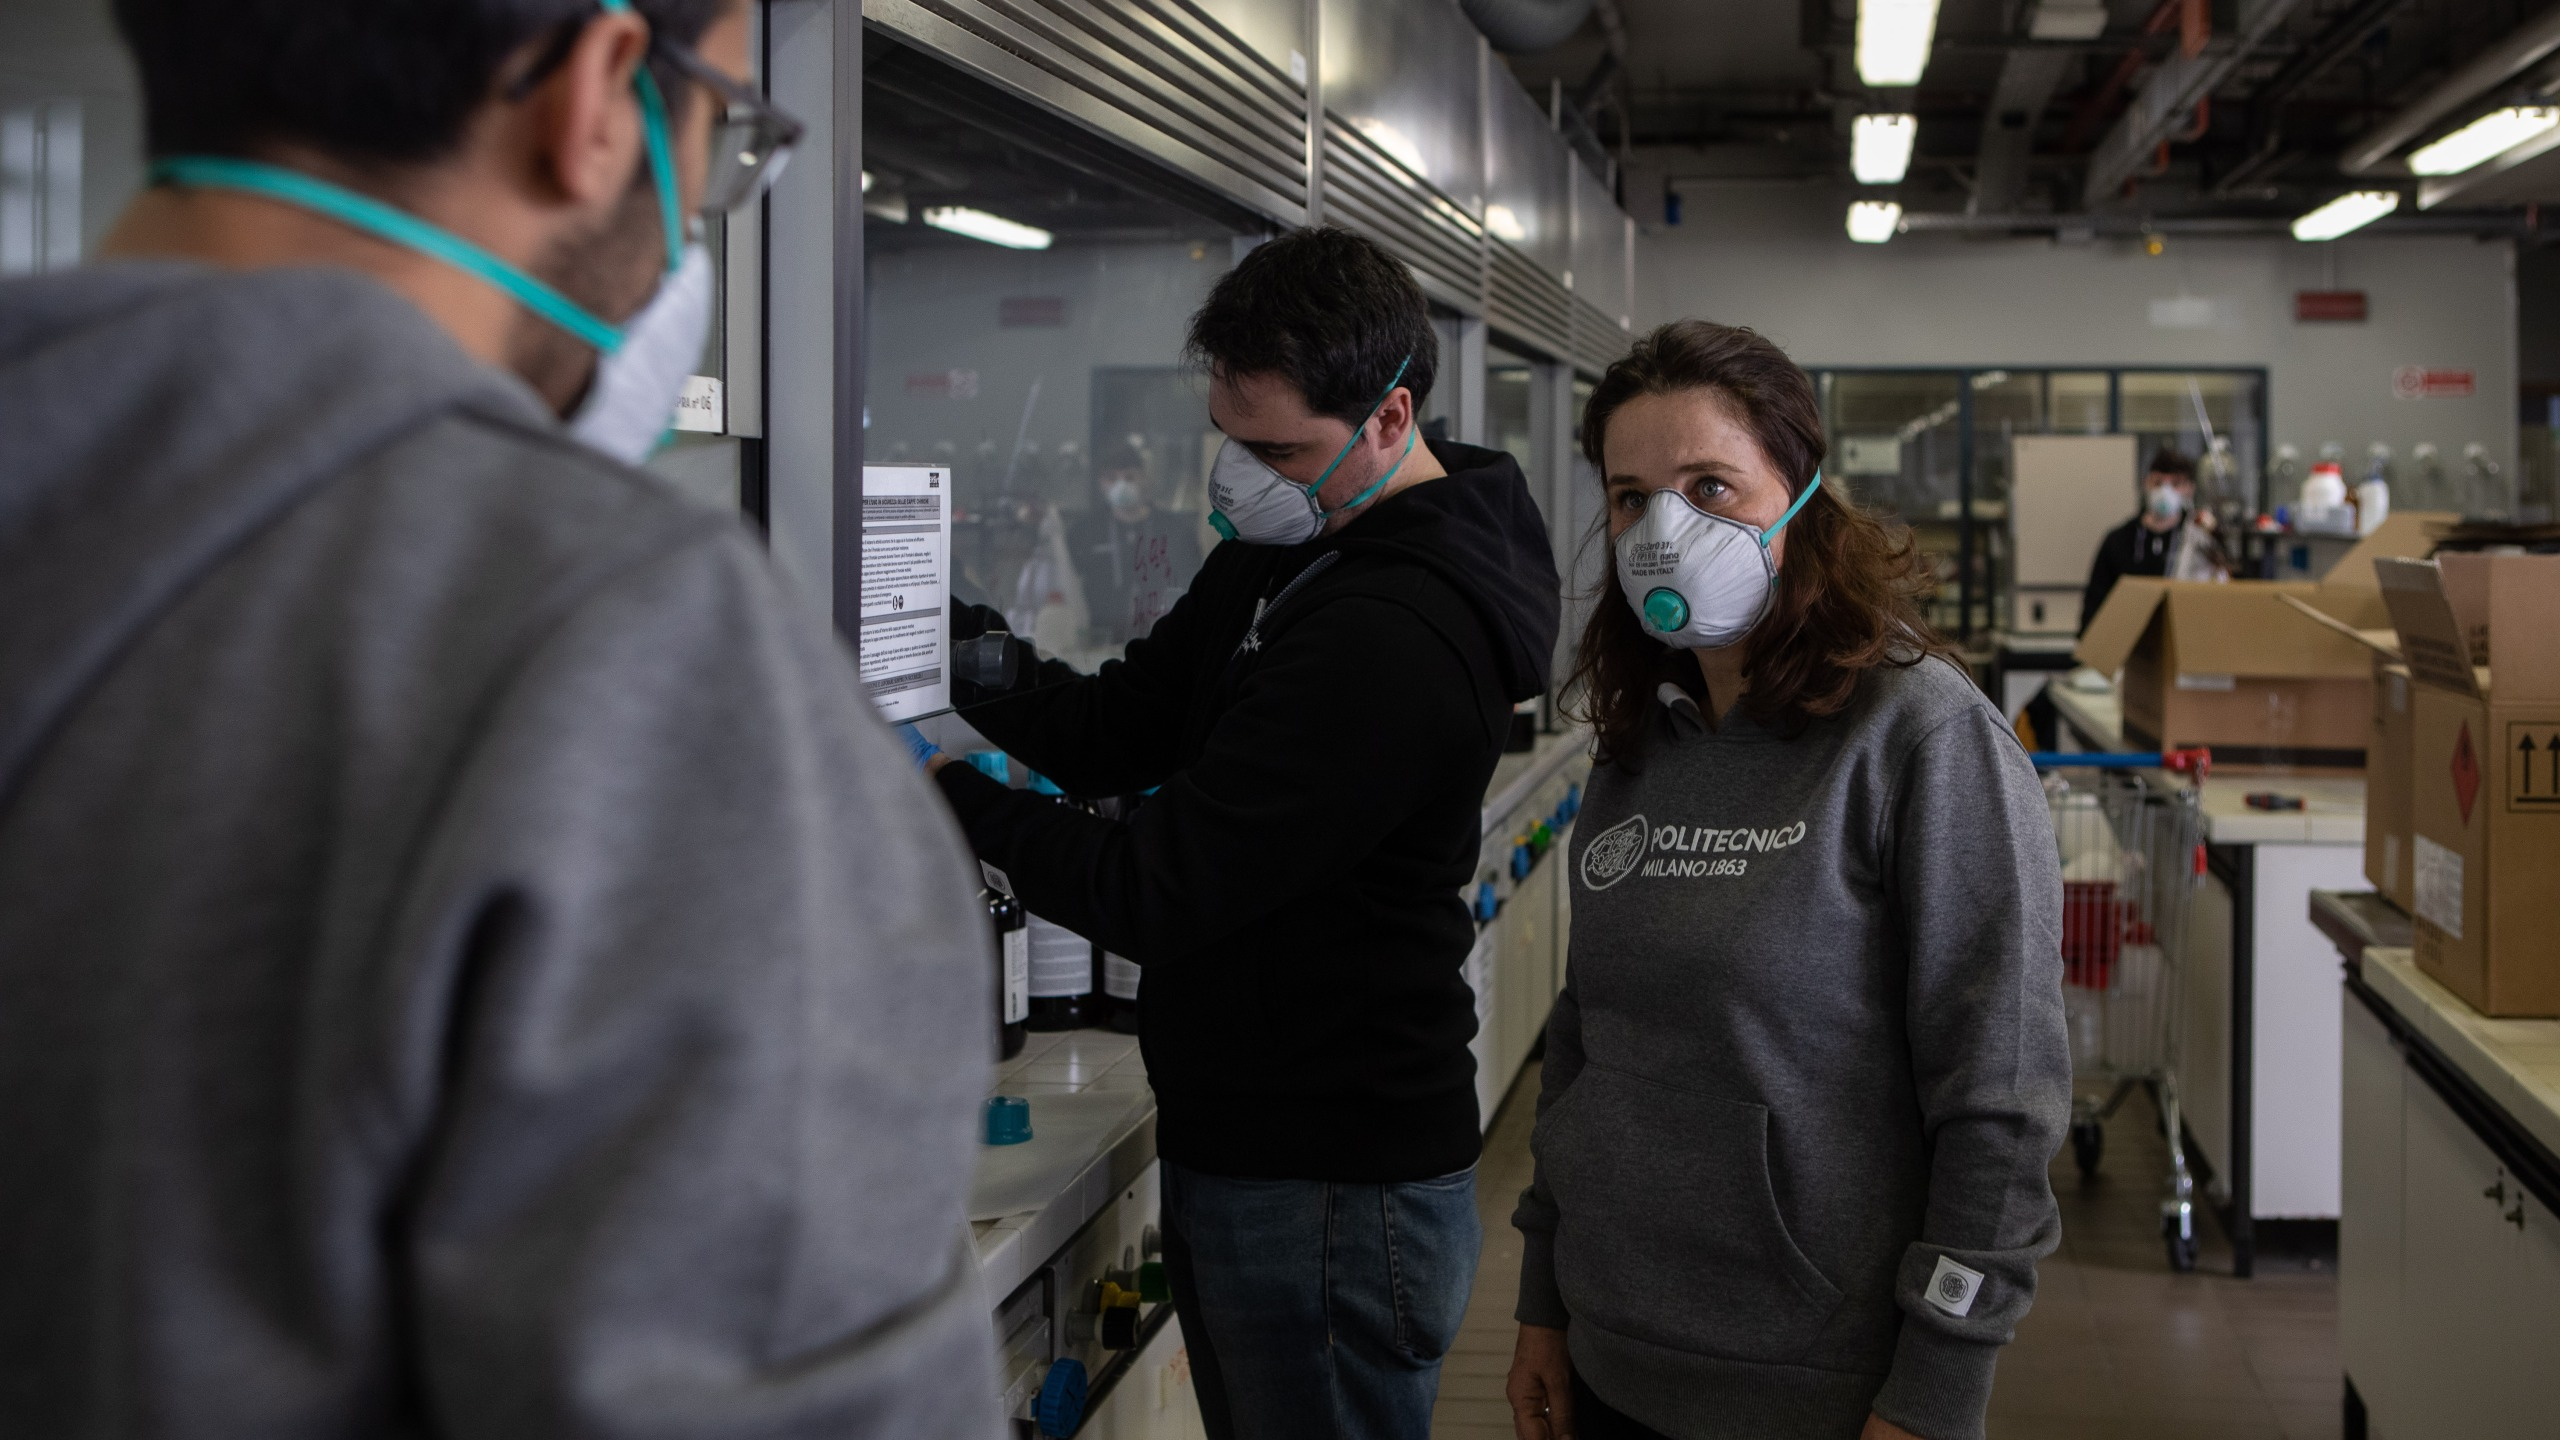 Professor MariaPia Pedeferri talks to a PhD student inside the Department laboratory at Politecnico di Milano on March 19, 2020, in Milan, Italy. (Emanuele Cremaschi/Getty Images)